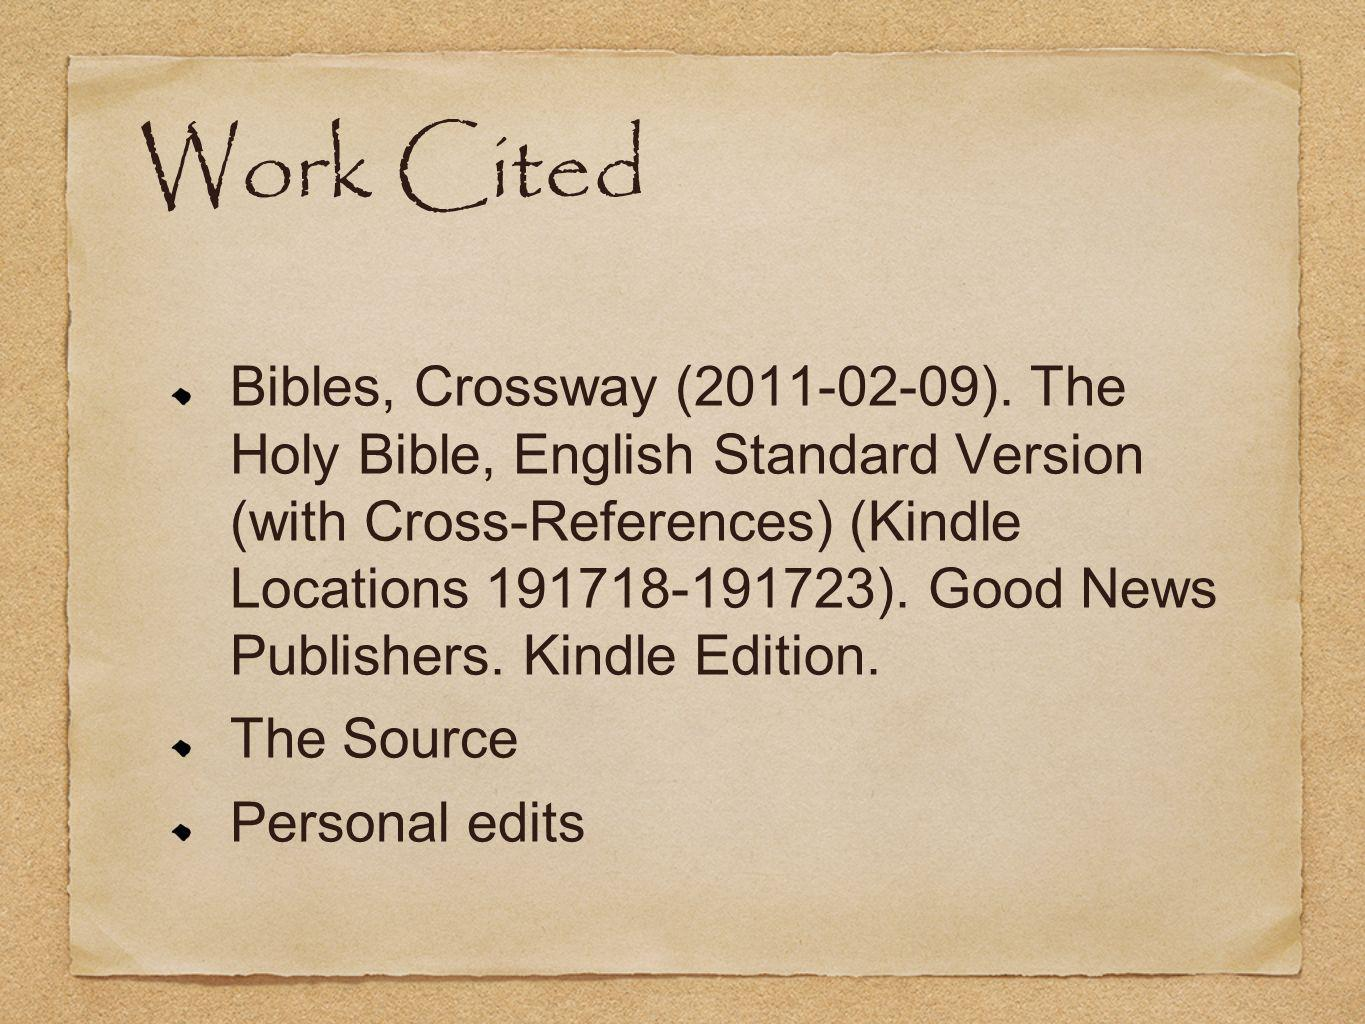 Work Cited Bibles, Crossway (2011-02-09). The Holy Bible, English Standard Version (with Cross-References) (Kindle Locations 191718-191723). Good News